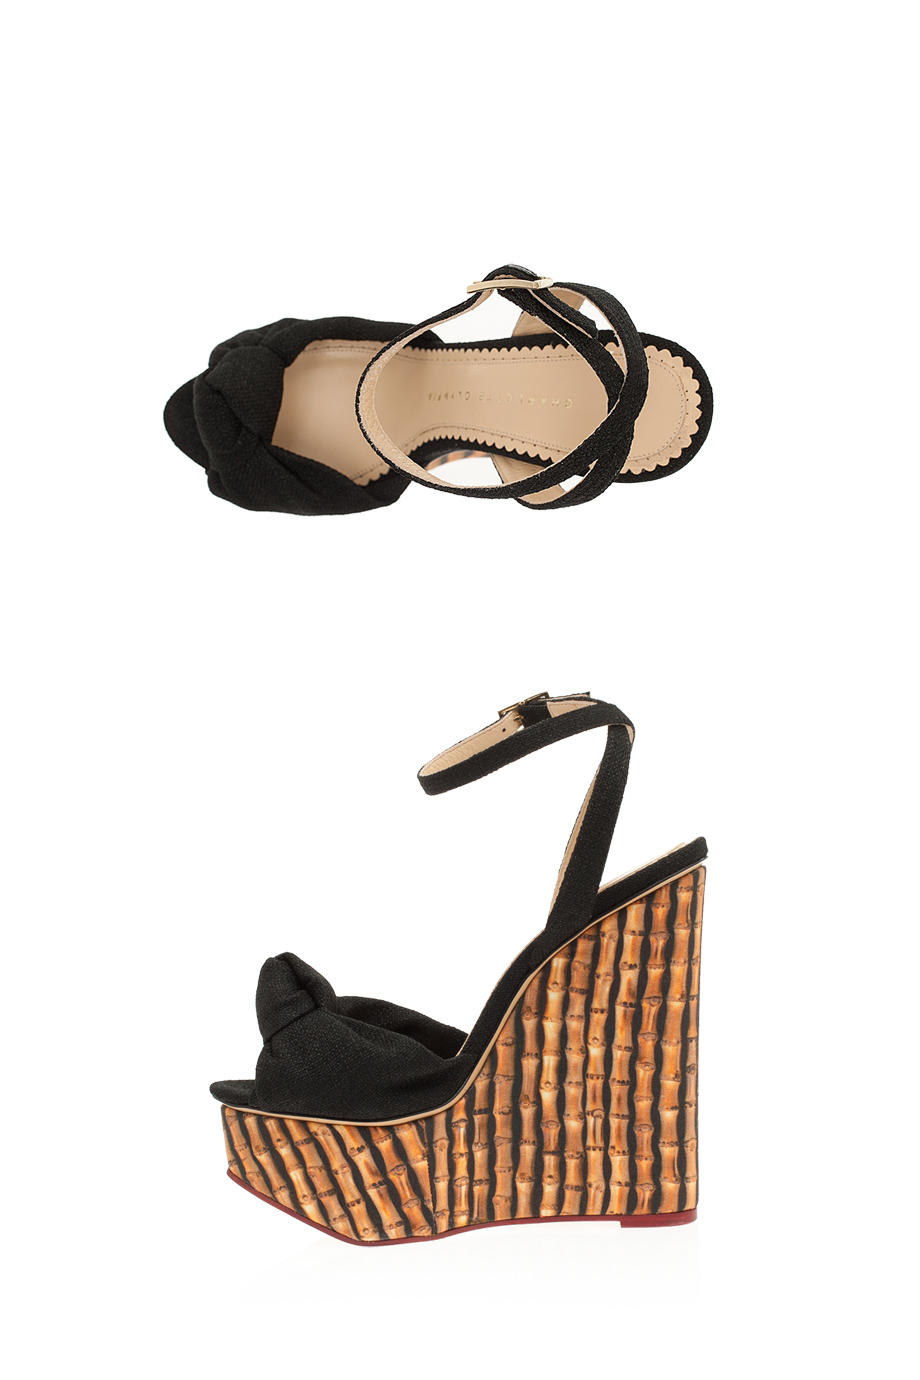 382216281656 Lyst - Charlotte Olympia Bamboo Wedge Linen Sandals in Black